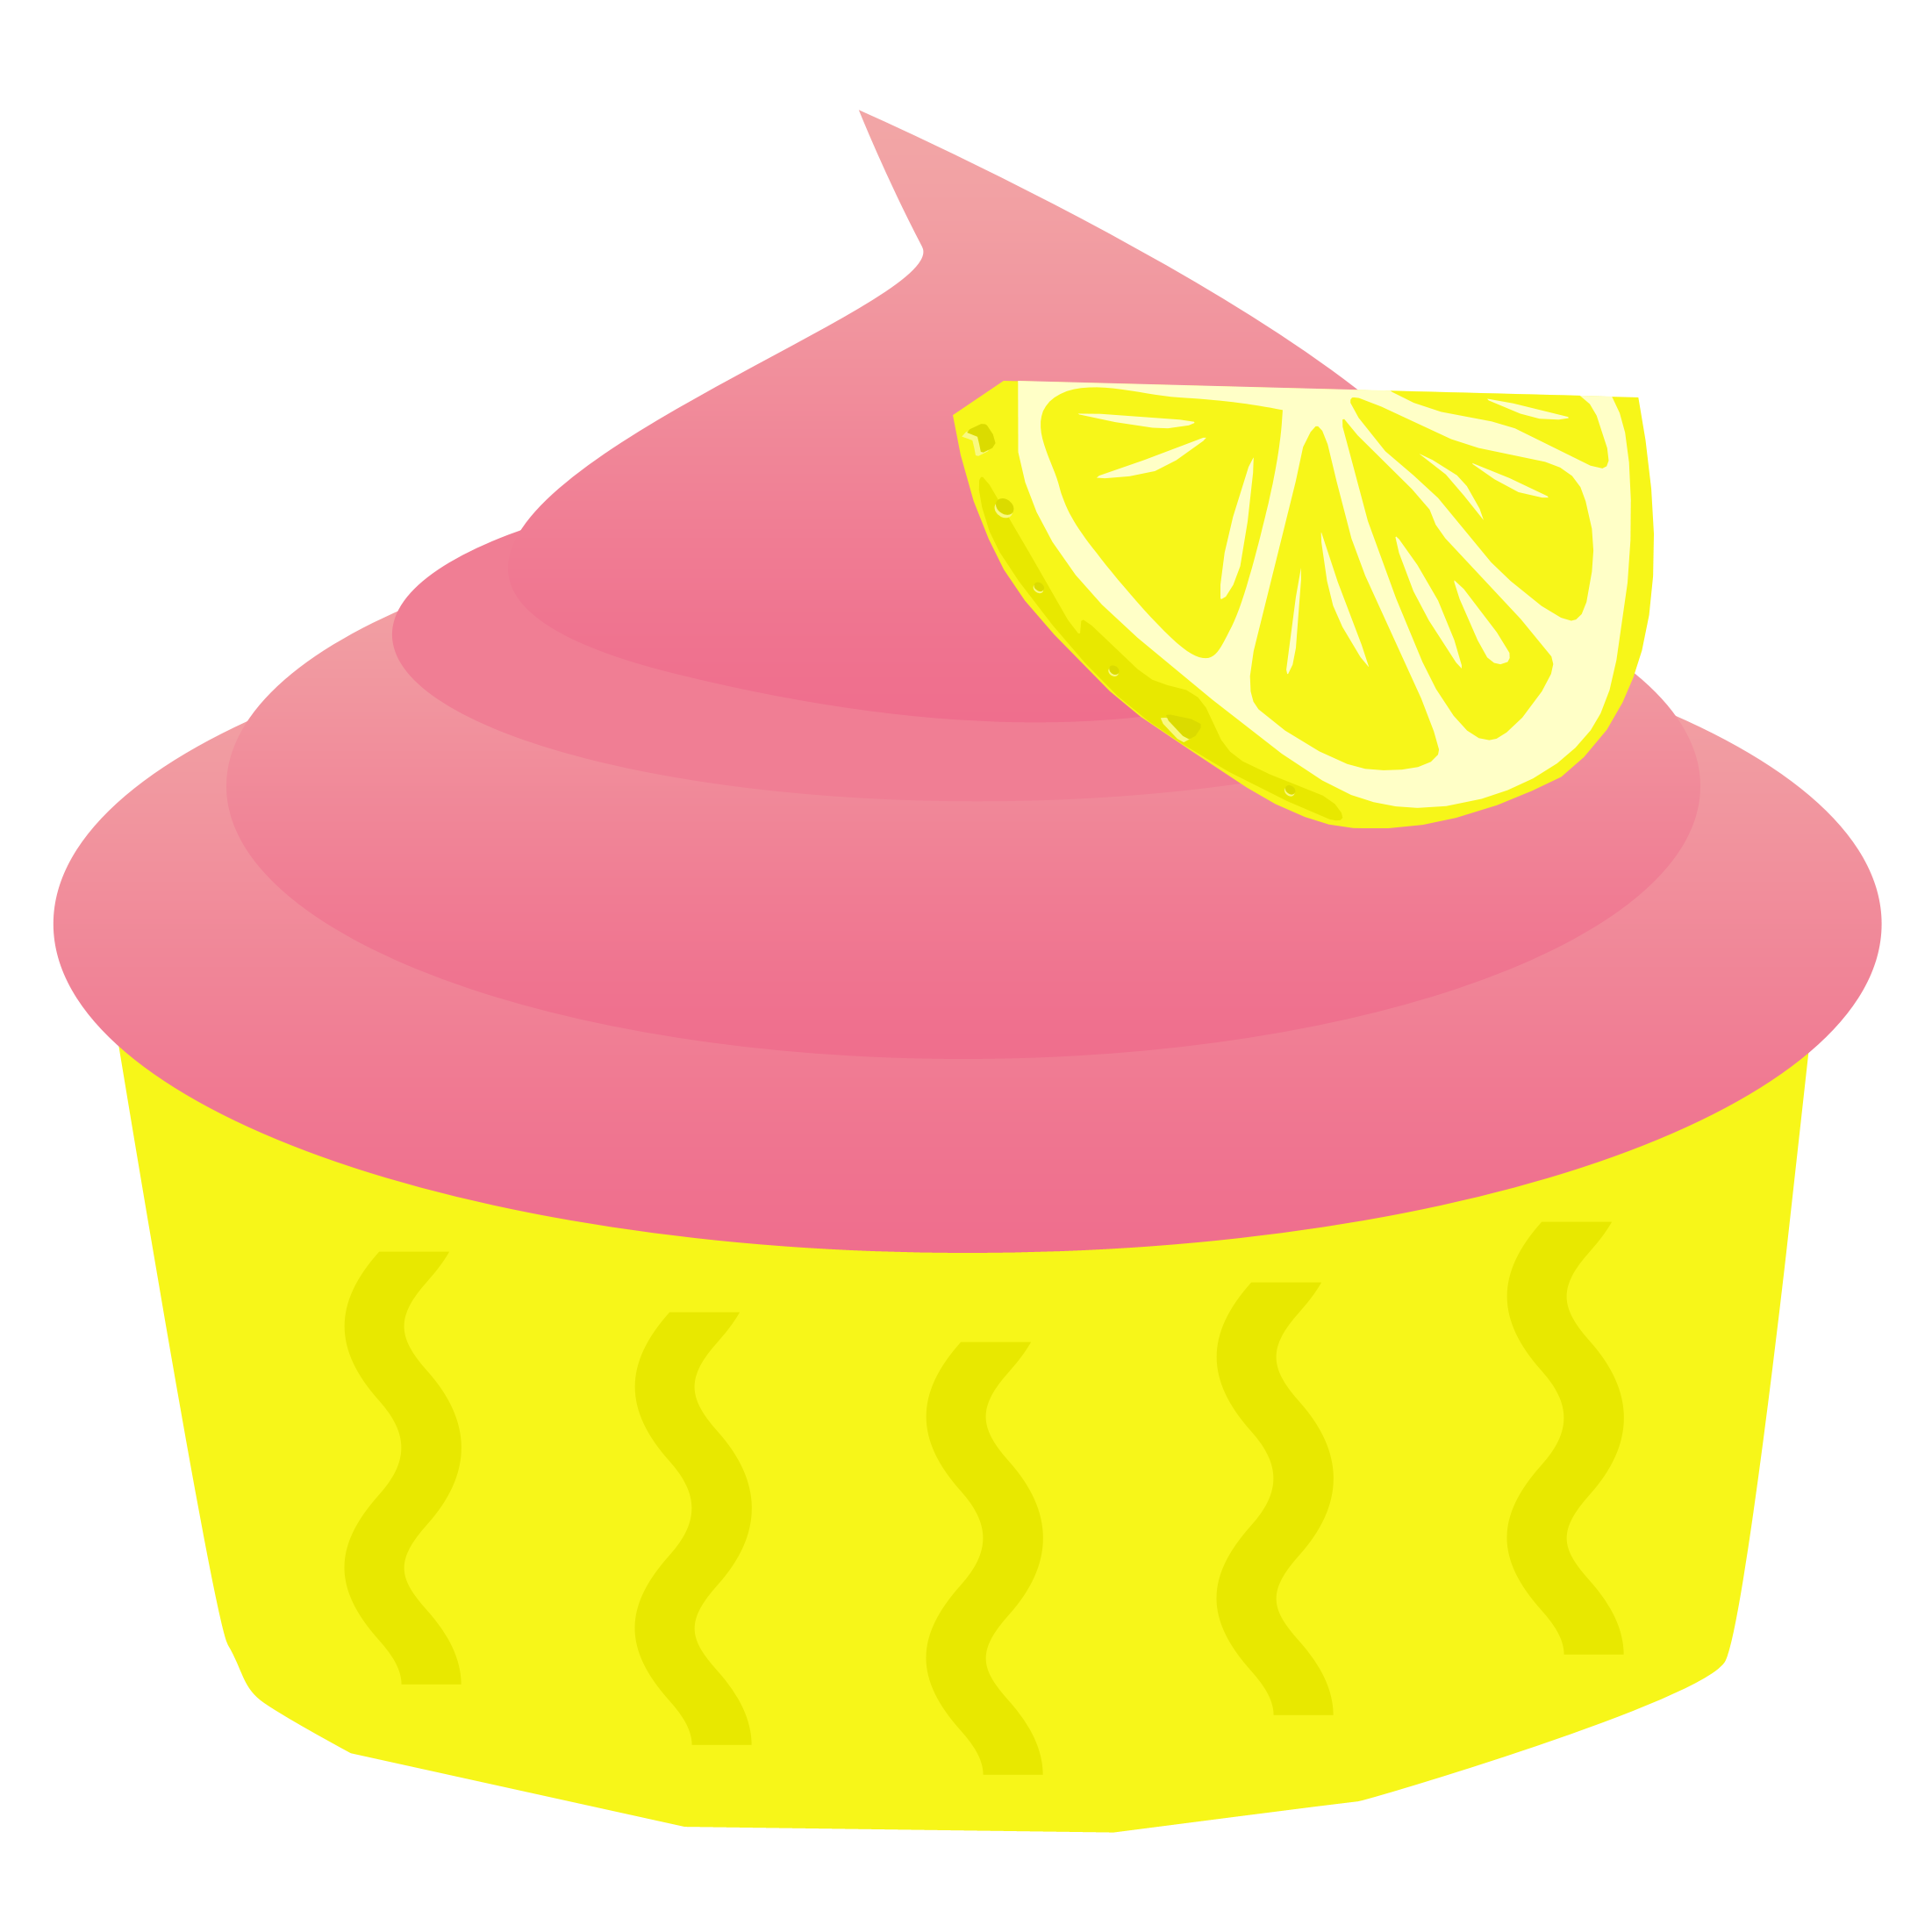 Cupcakes clipart one cupcake. Birthday at getdrawings com